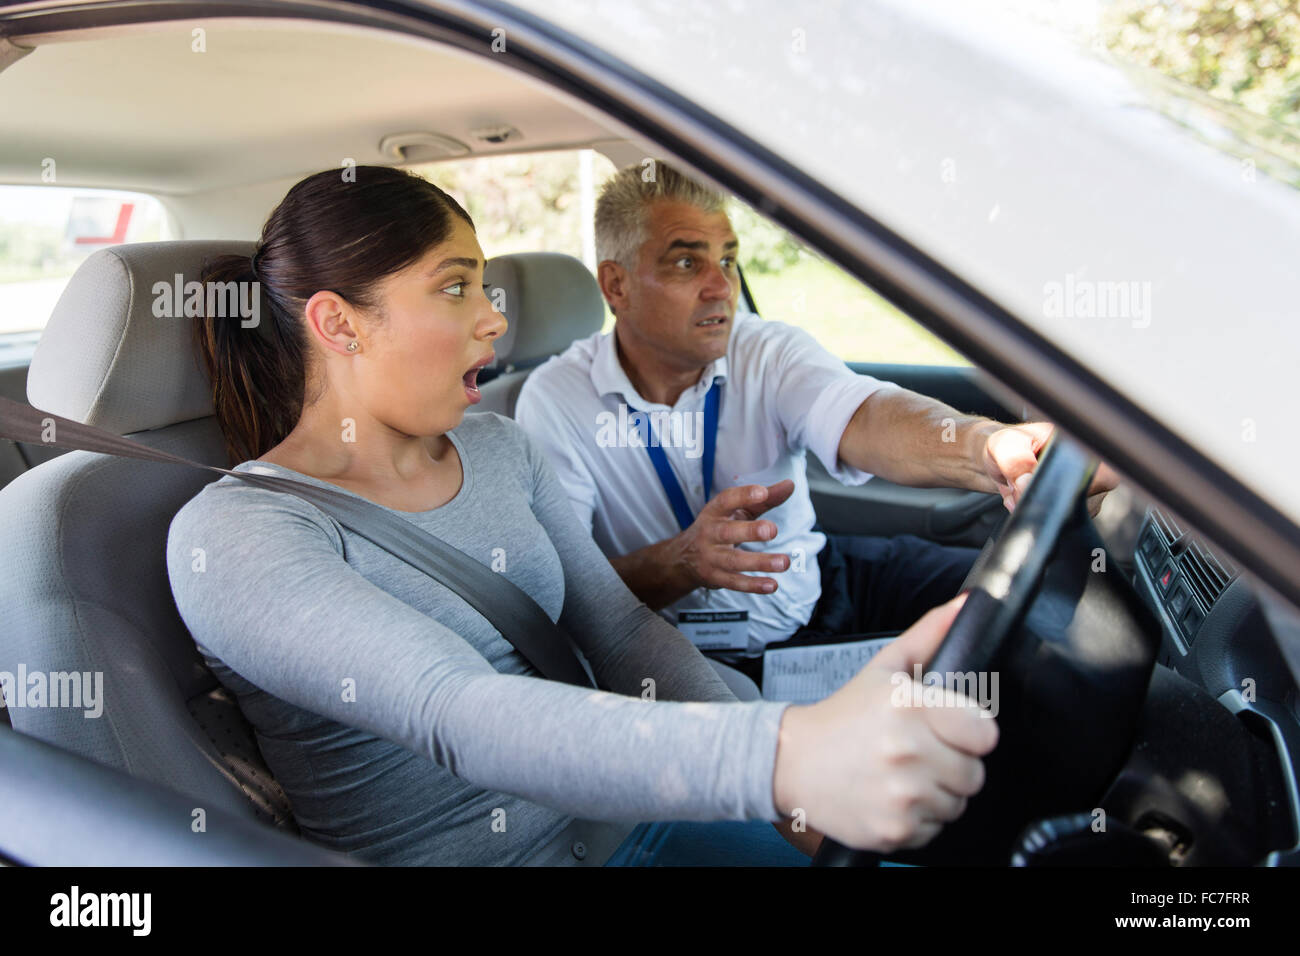 scared student driver making mistake during driving test - Stock Image